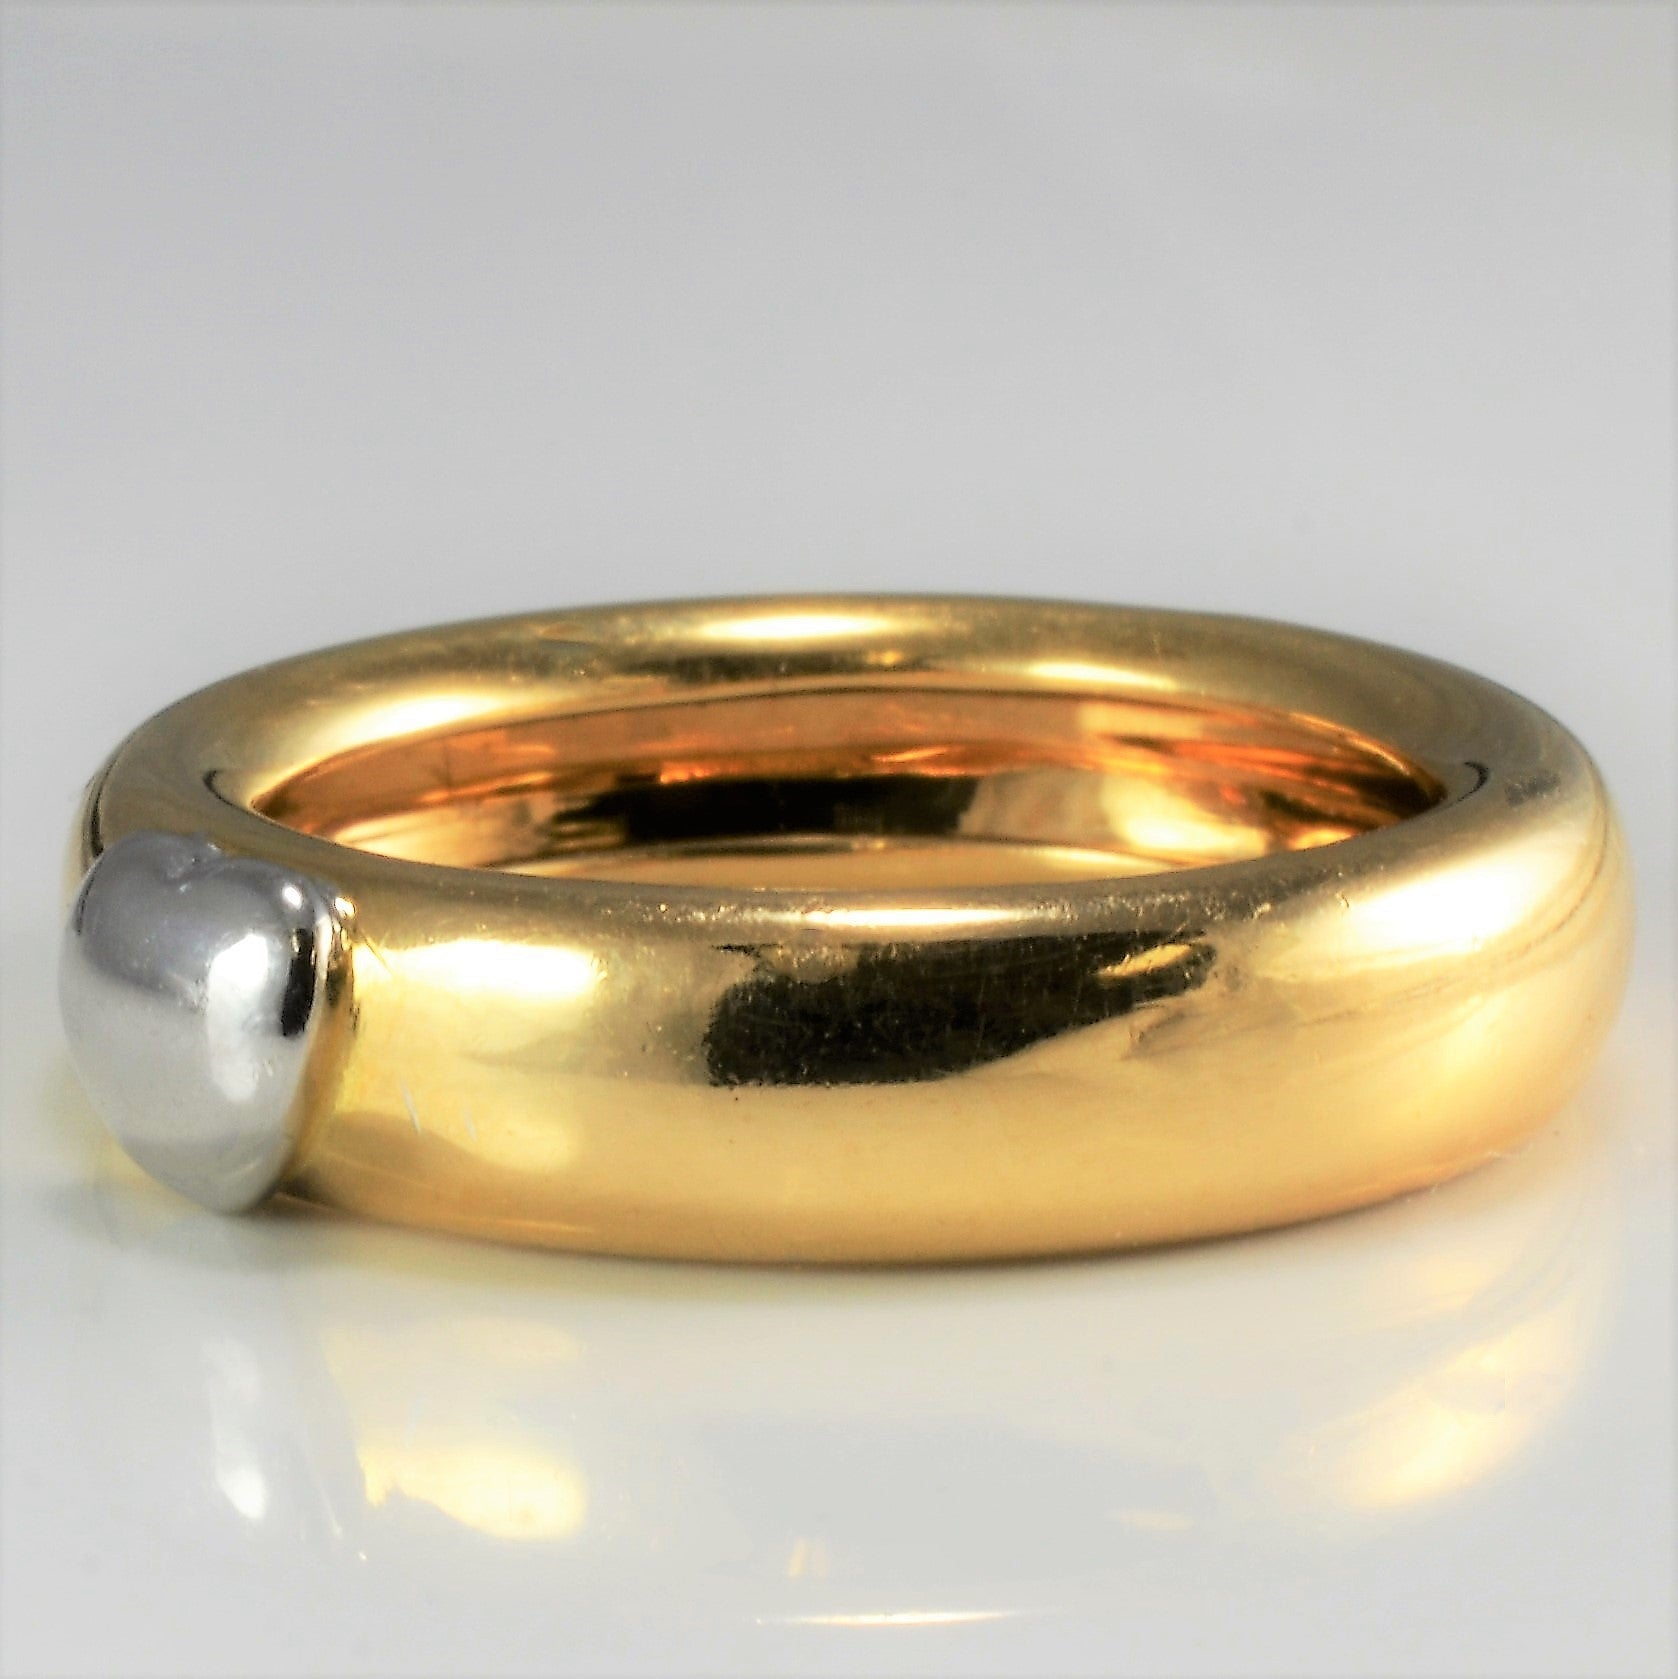 Tiffany & Co. 18K Gold Solid Band | SZ 6.75 |